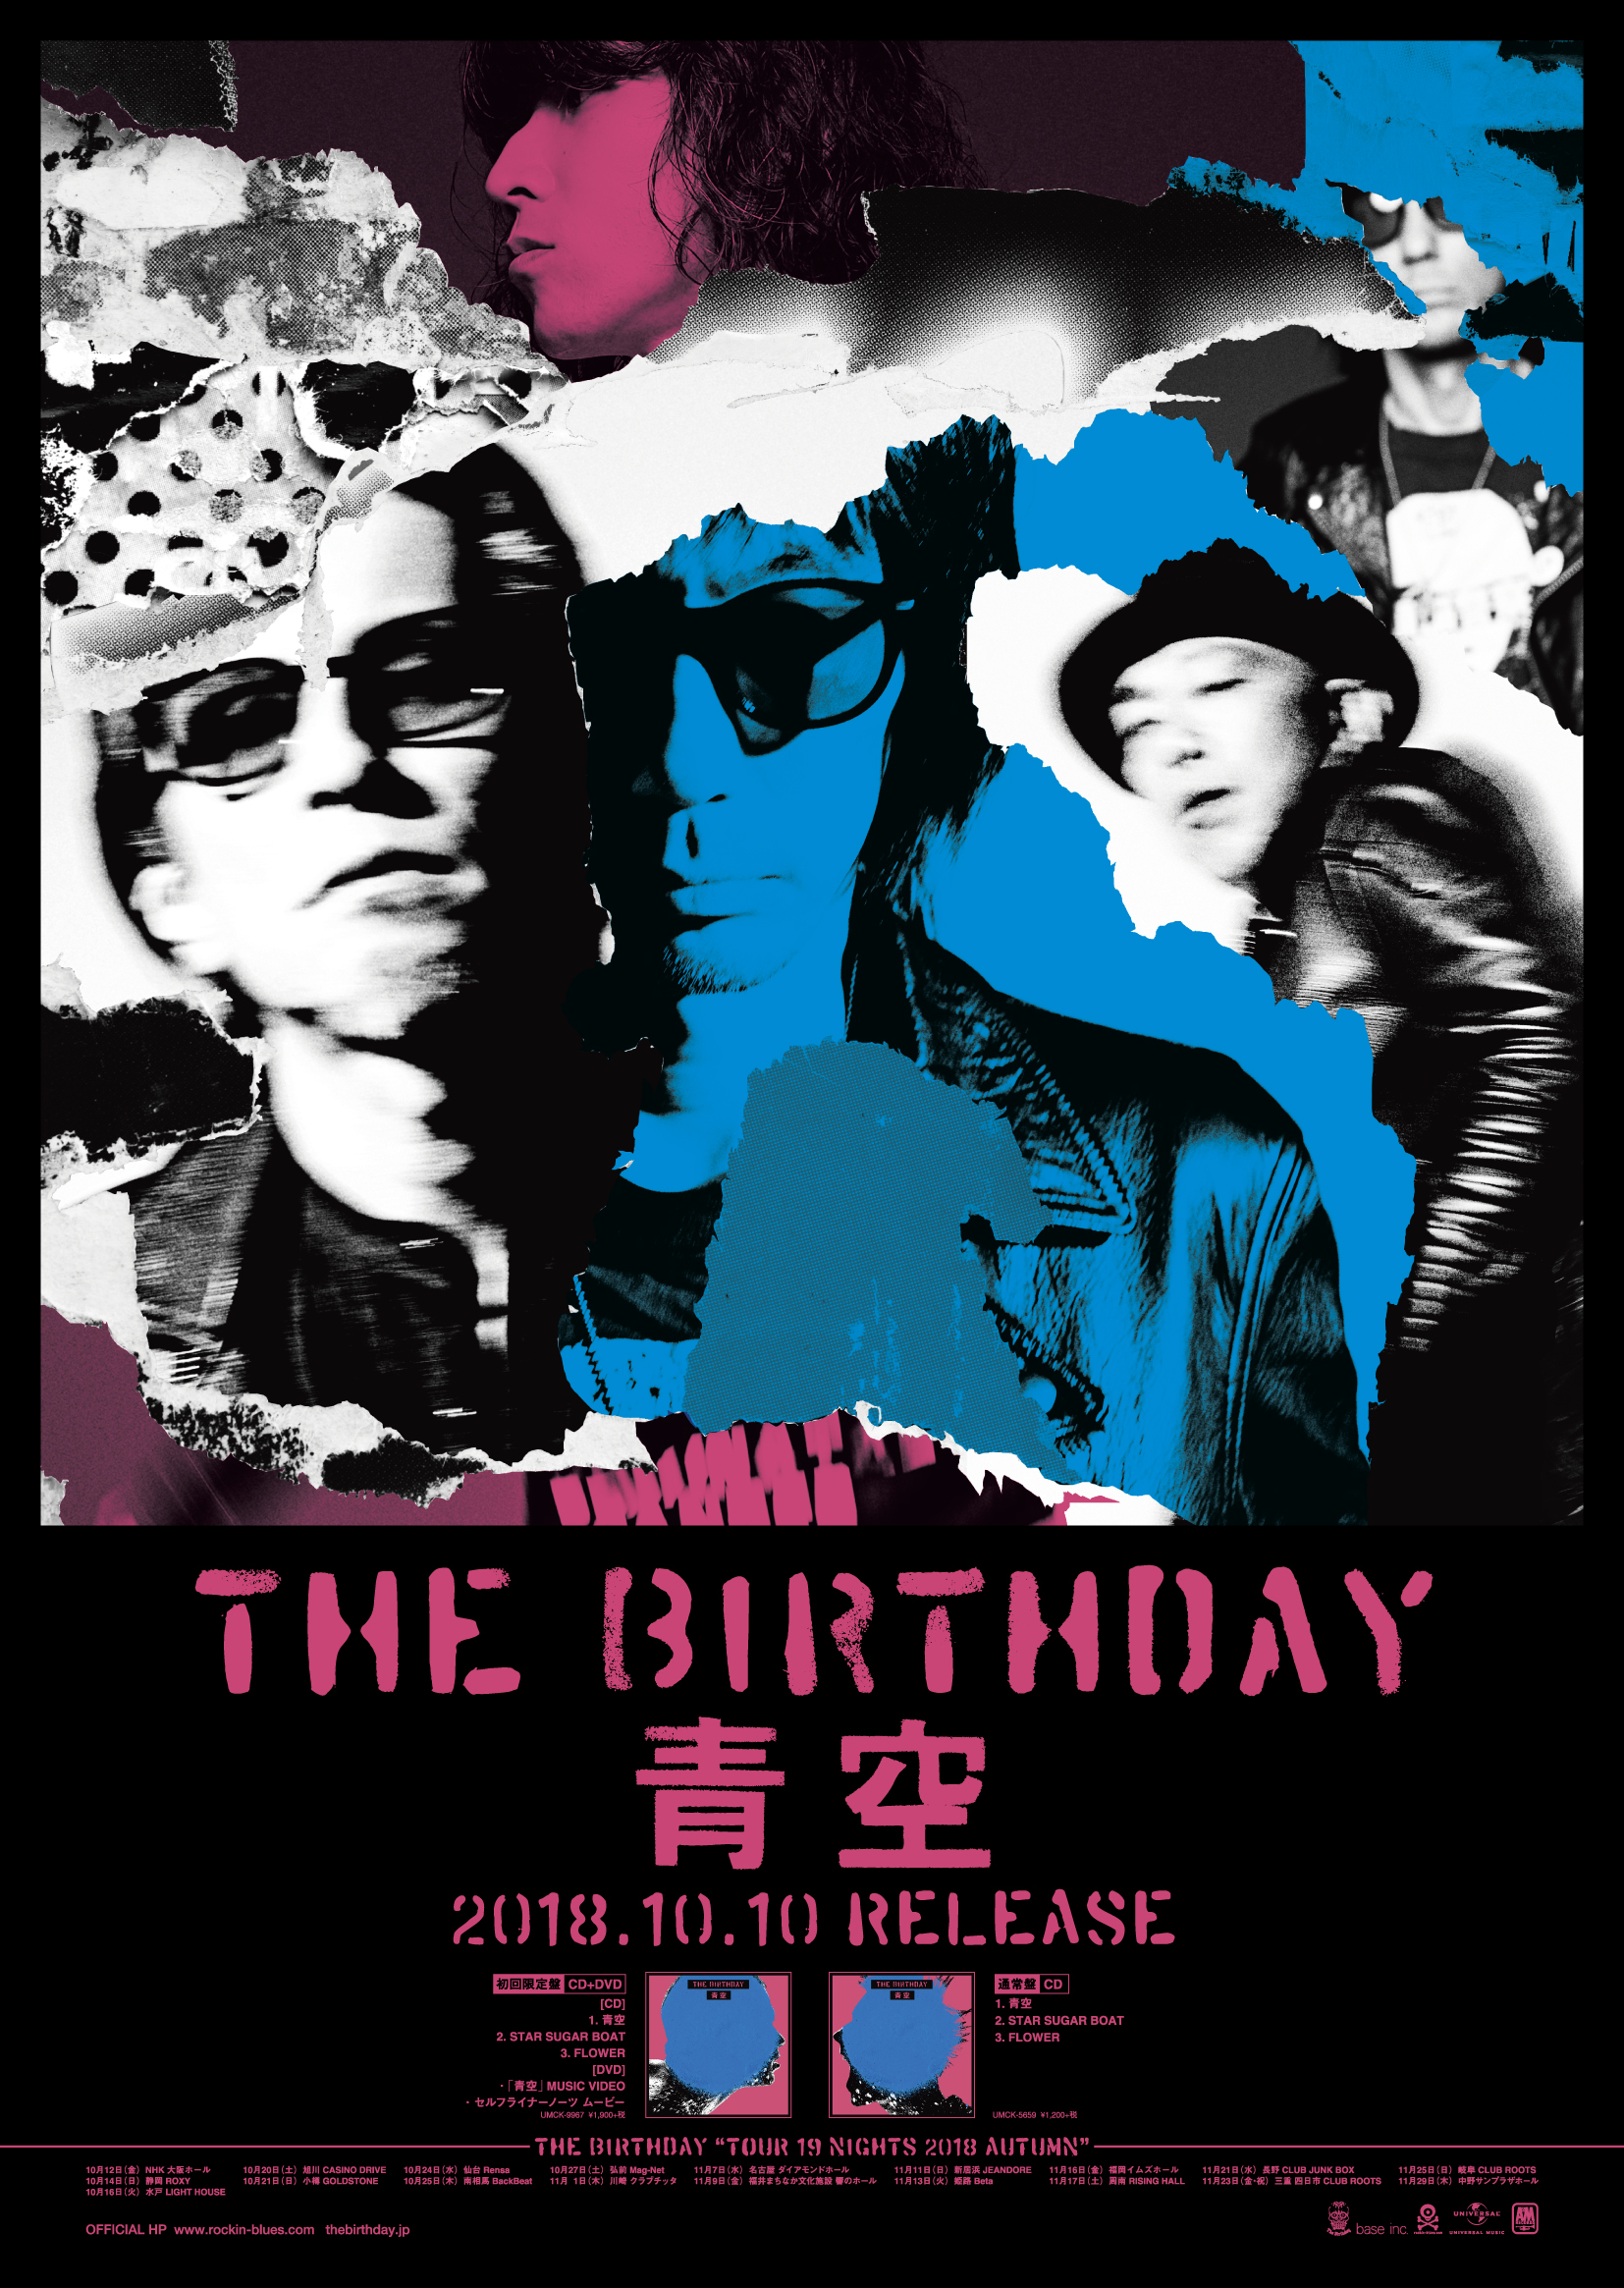 The Birthday 「青空」 Poster